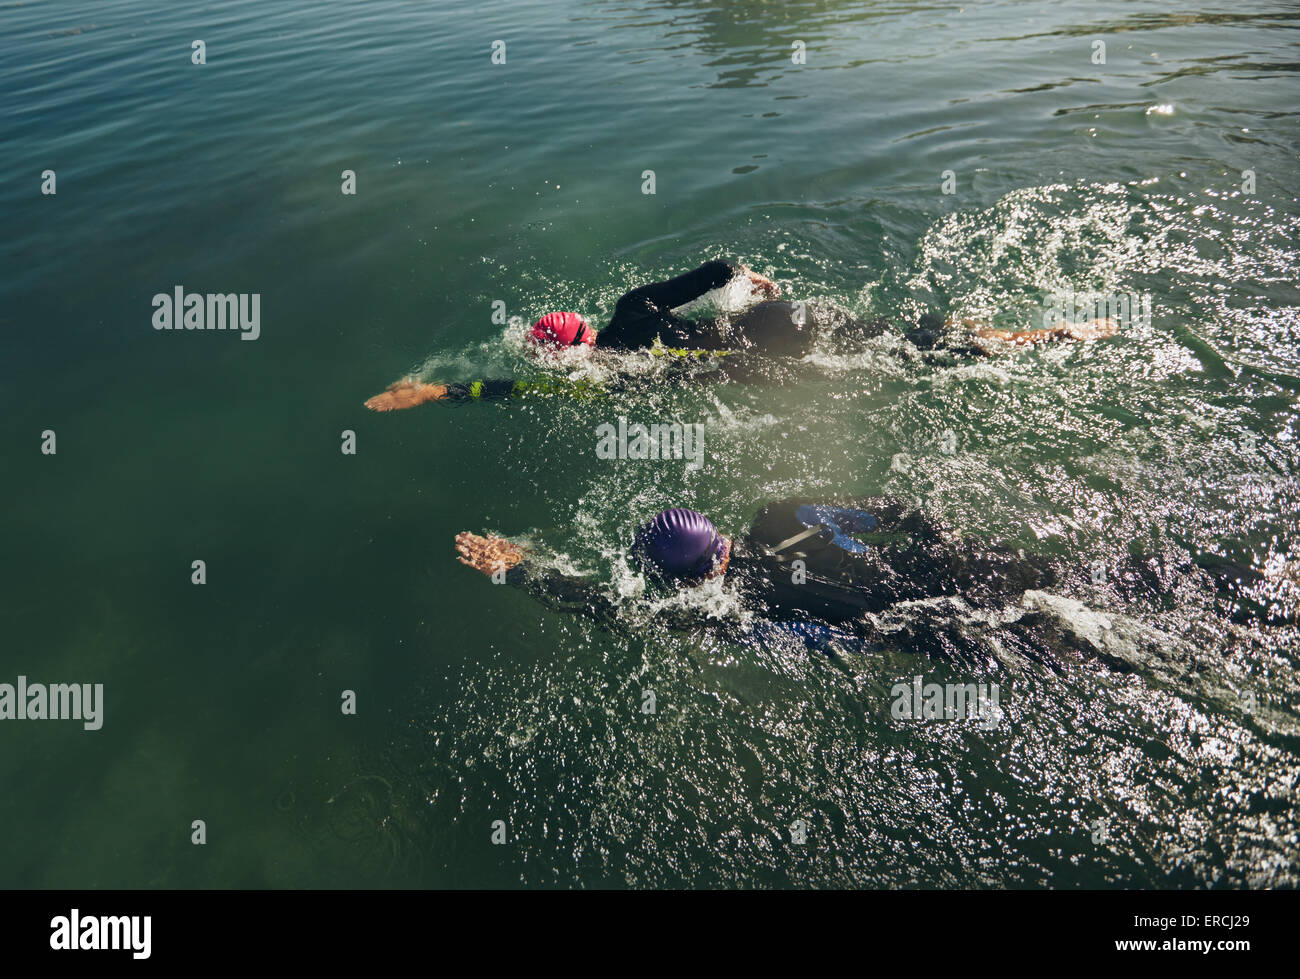 View of swimmers in water. Triathlon participants practicing for swim event. - Stock Image